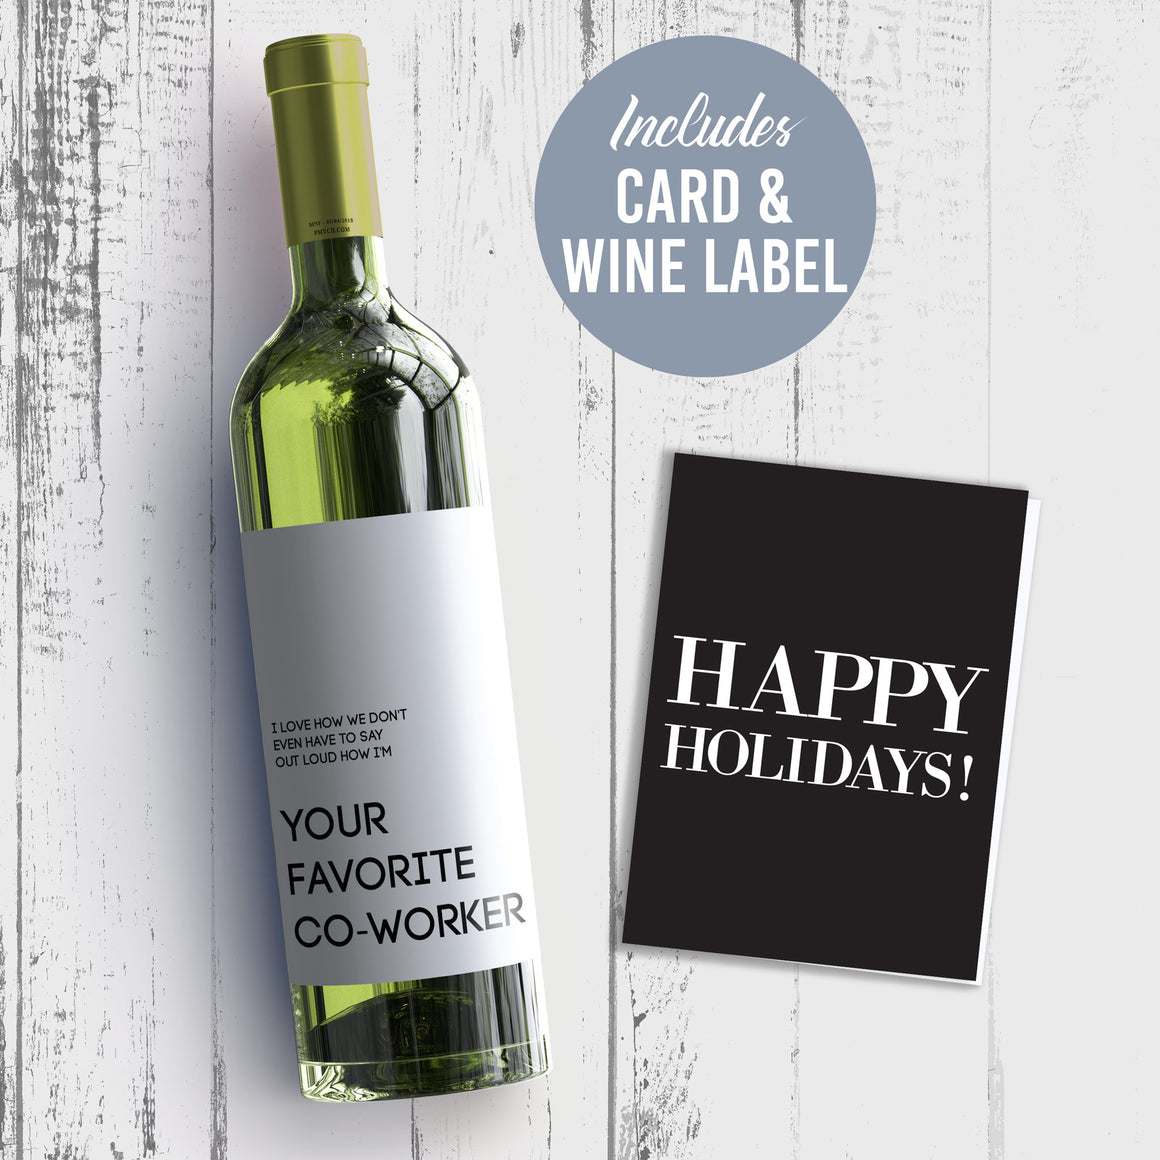 I Love How We Don't Even Have To Say Out Loud How I'm Your Favorite Co-Worker Wine Label